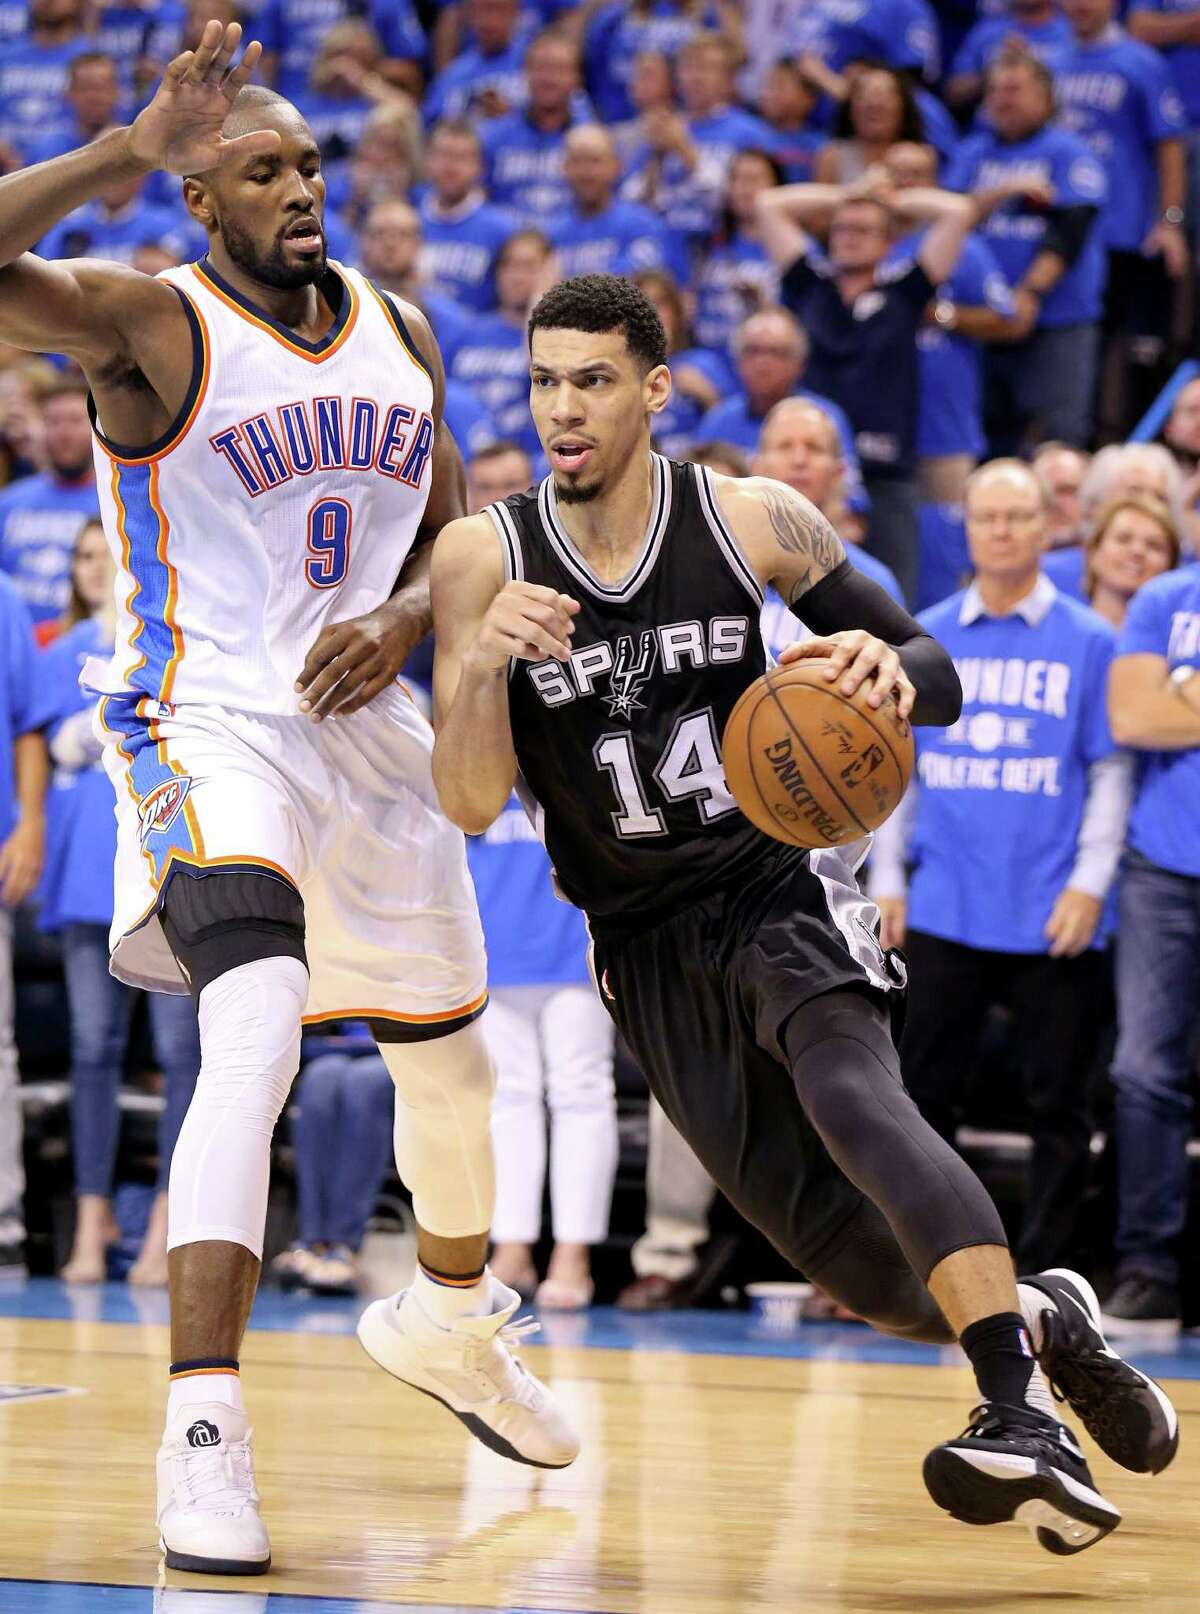 Spurs' Danny Green looks for room around the Thunder's Serge Ibaka during second-half action of Game 6 in the Western Conference semifinals on May 12, 2016 at Chesapeake Energy Arena in Oklahoma City.